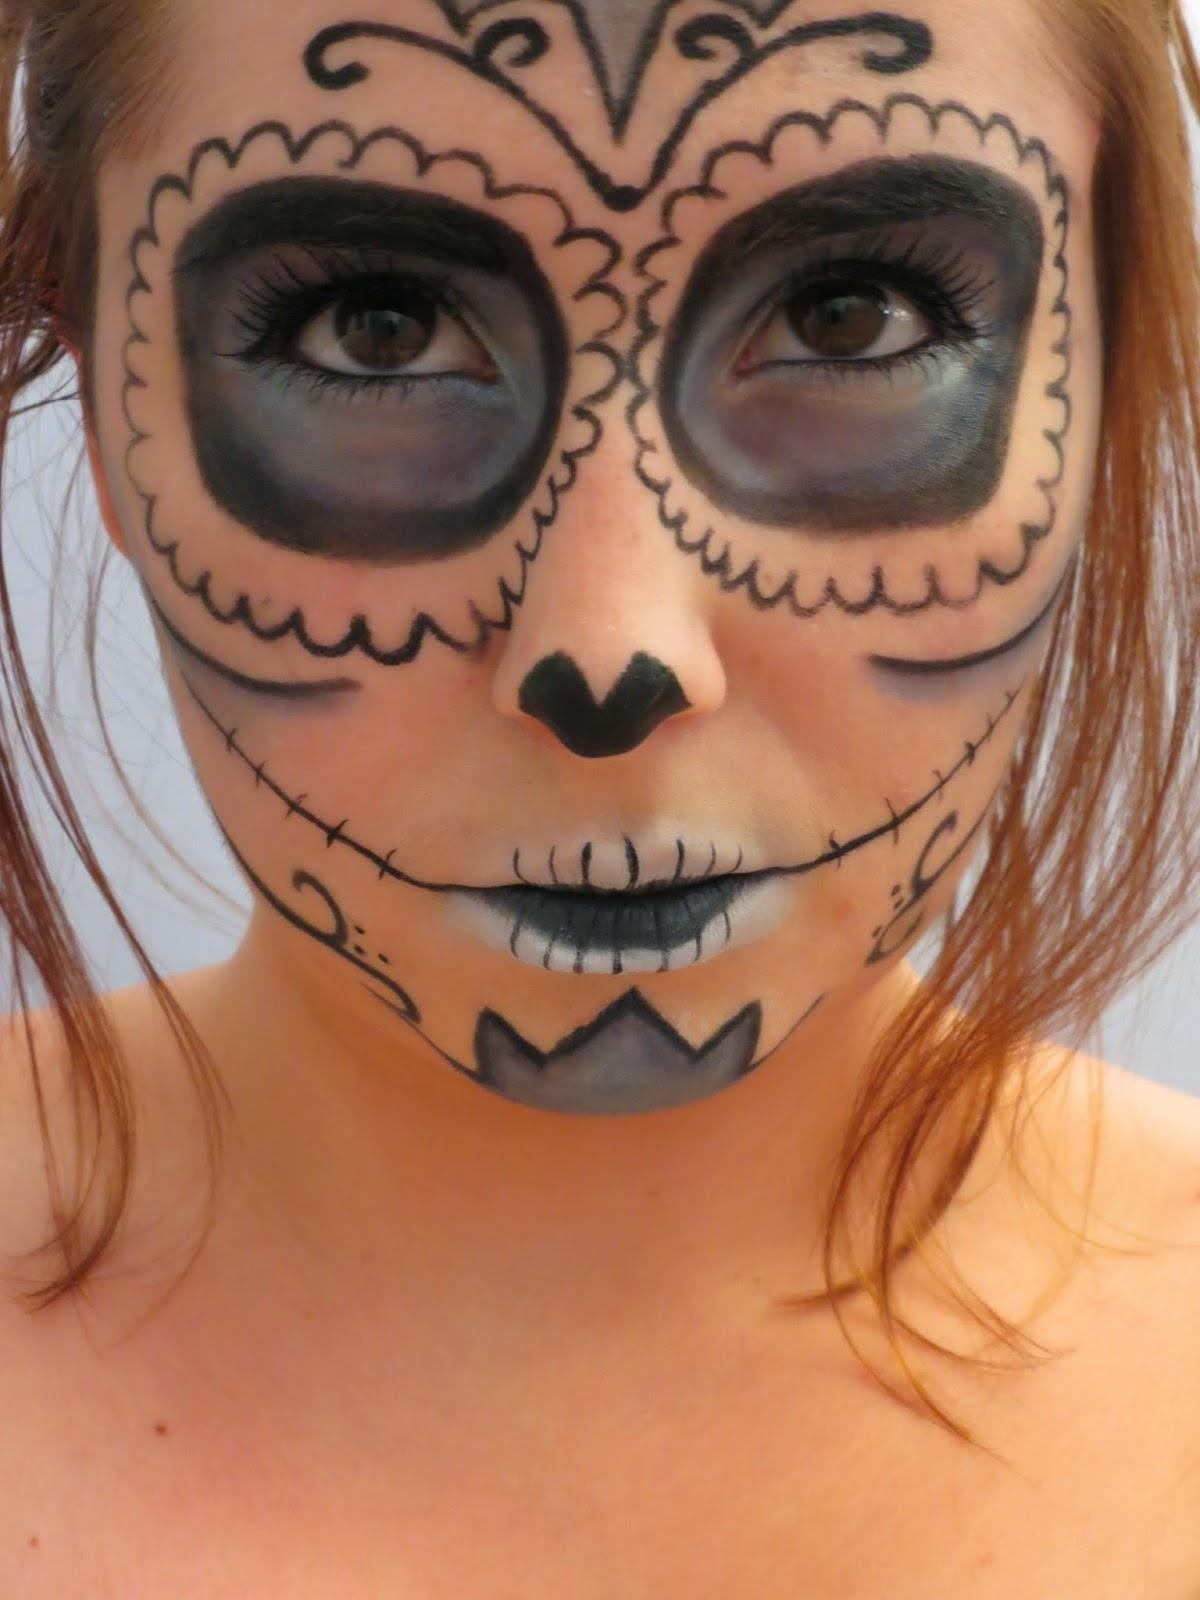 Maquillage d 39 hallowen clown diabolique sugar skull vieille sorci re - Maquillage de clown facile ...